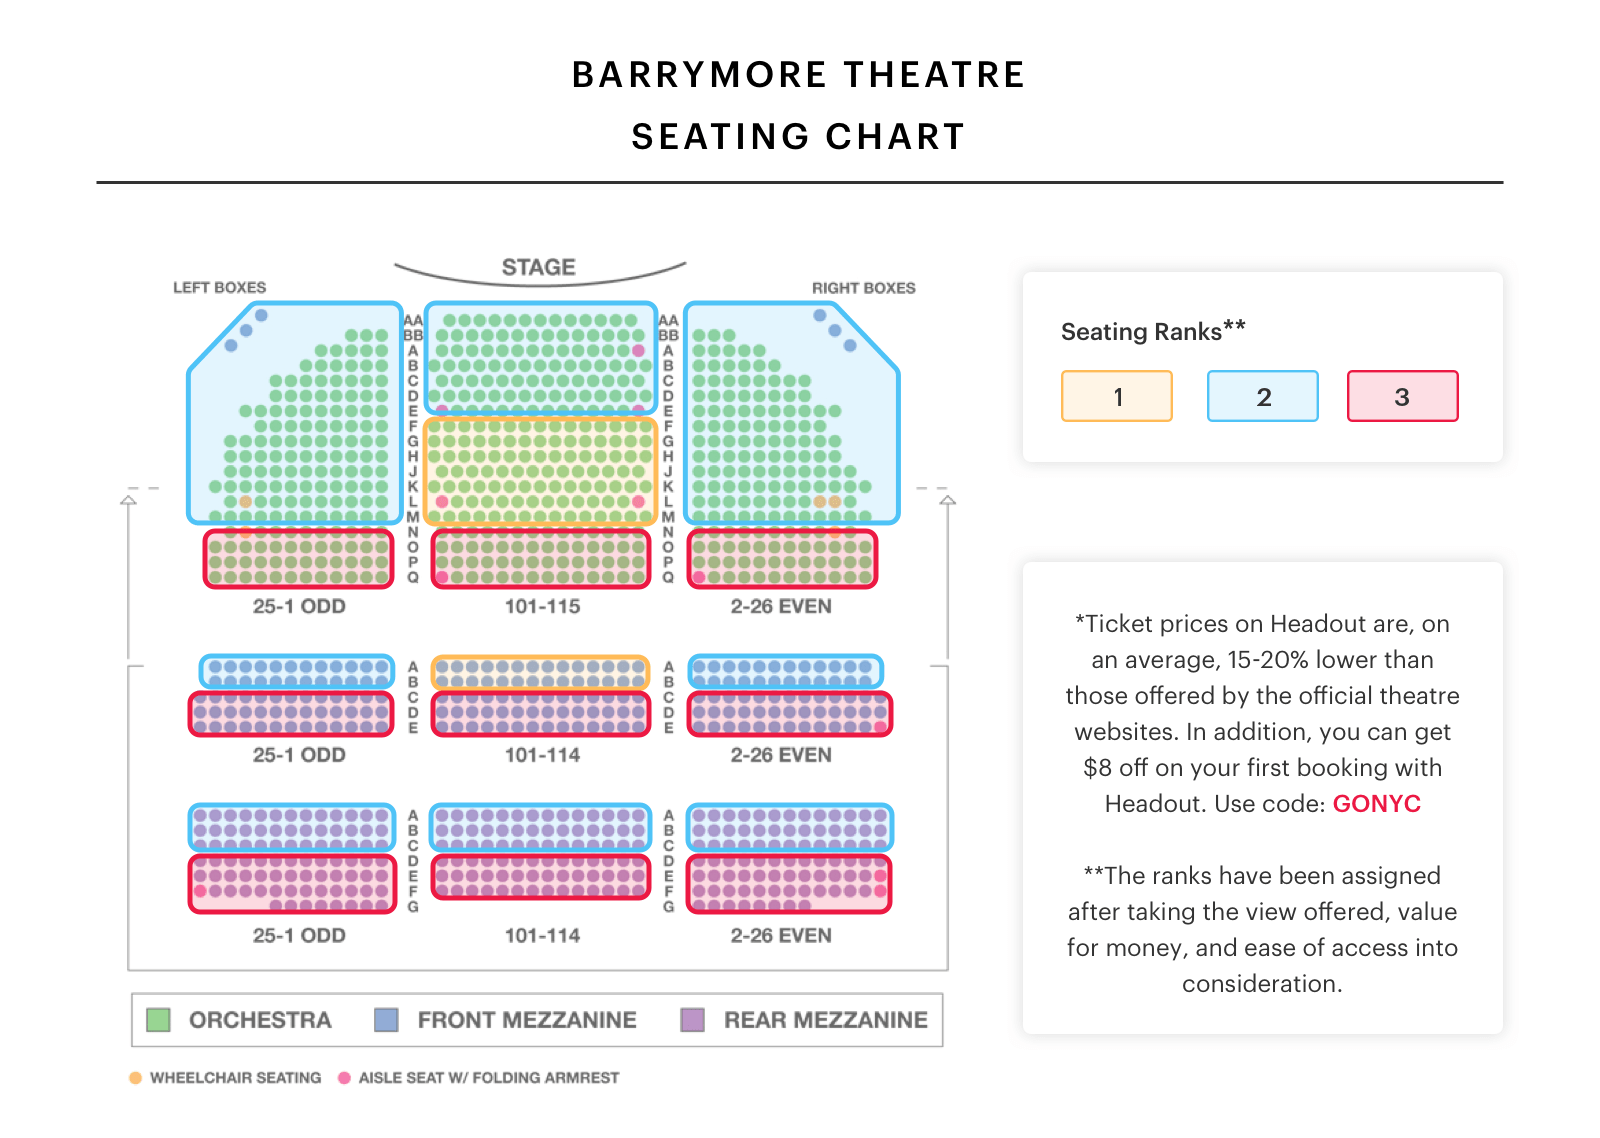 Ethel barrymore theatre seating chart also theater watch the band   visit on rh blog headout